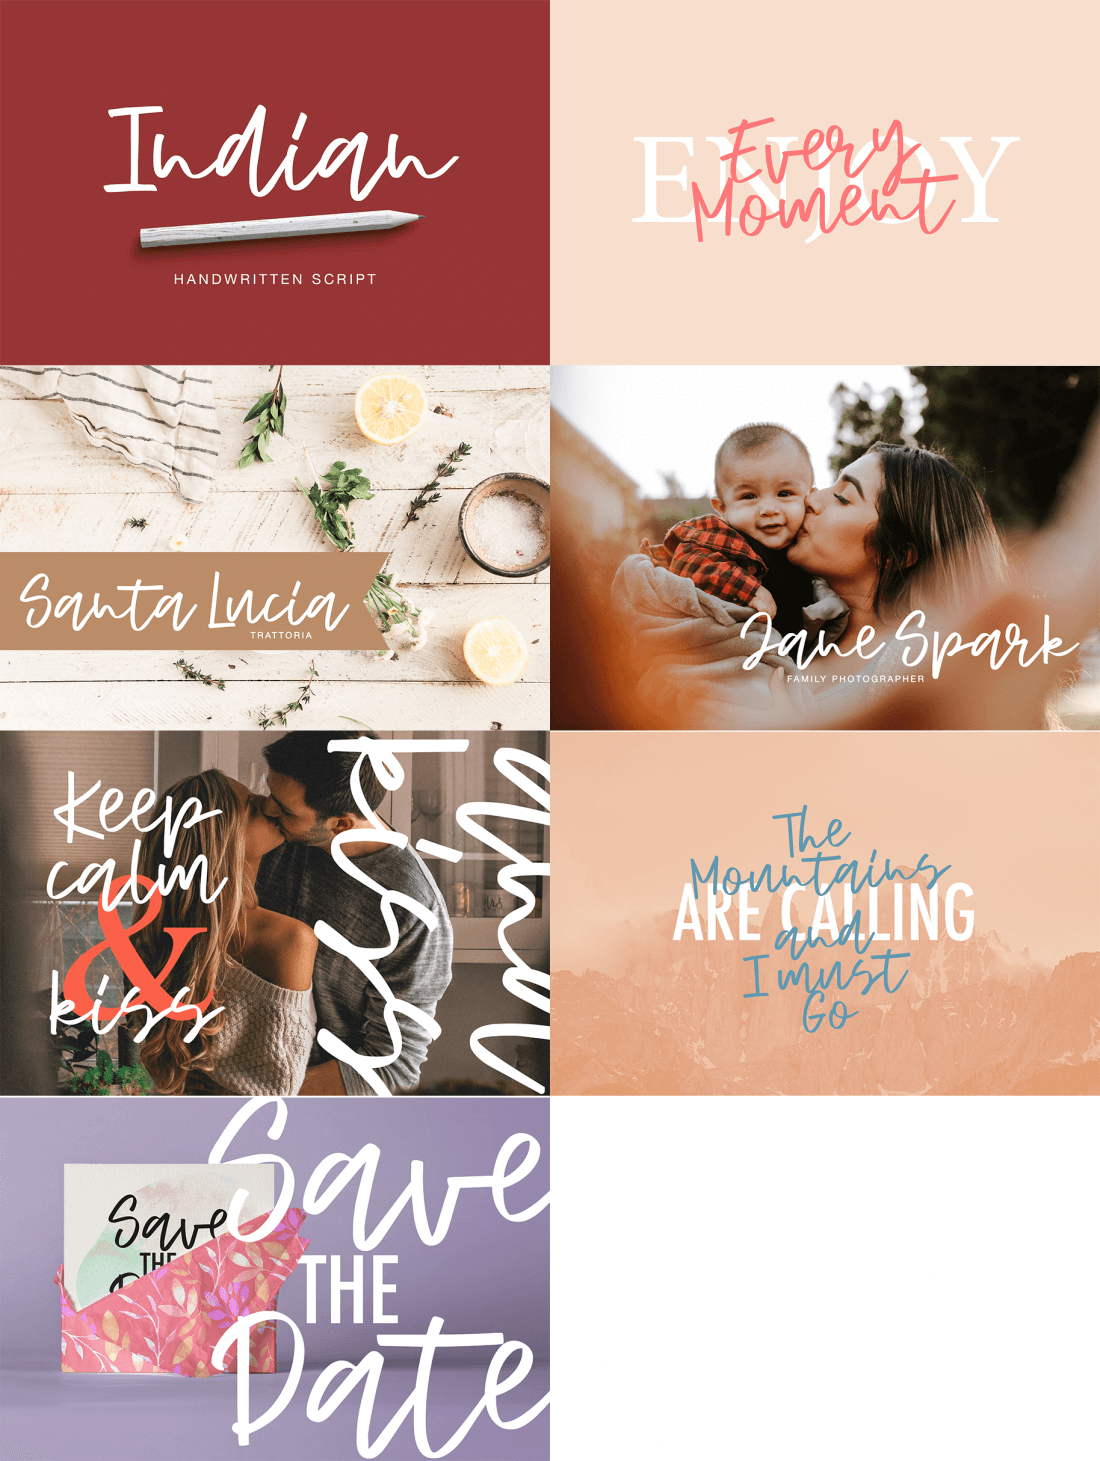 EXCLUSIVE! 85 Professional Font Families - only $9! - MightyDeals